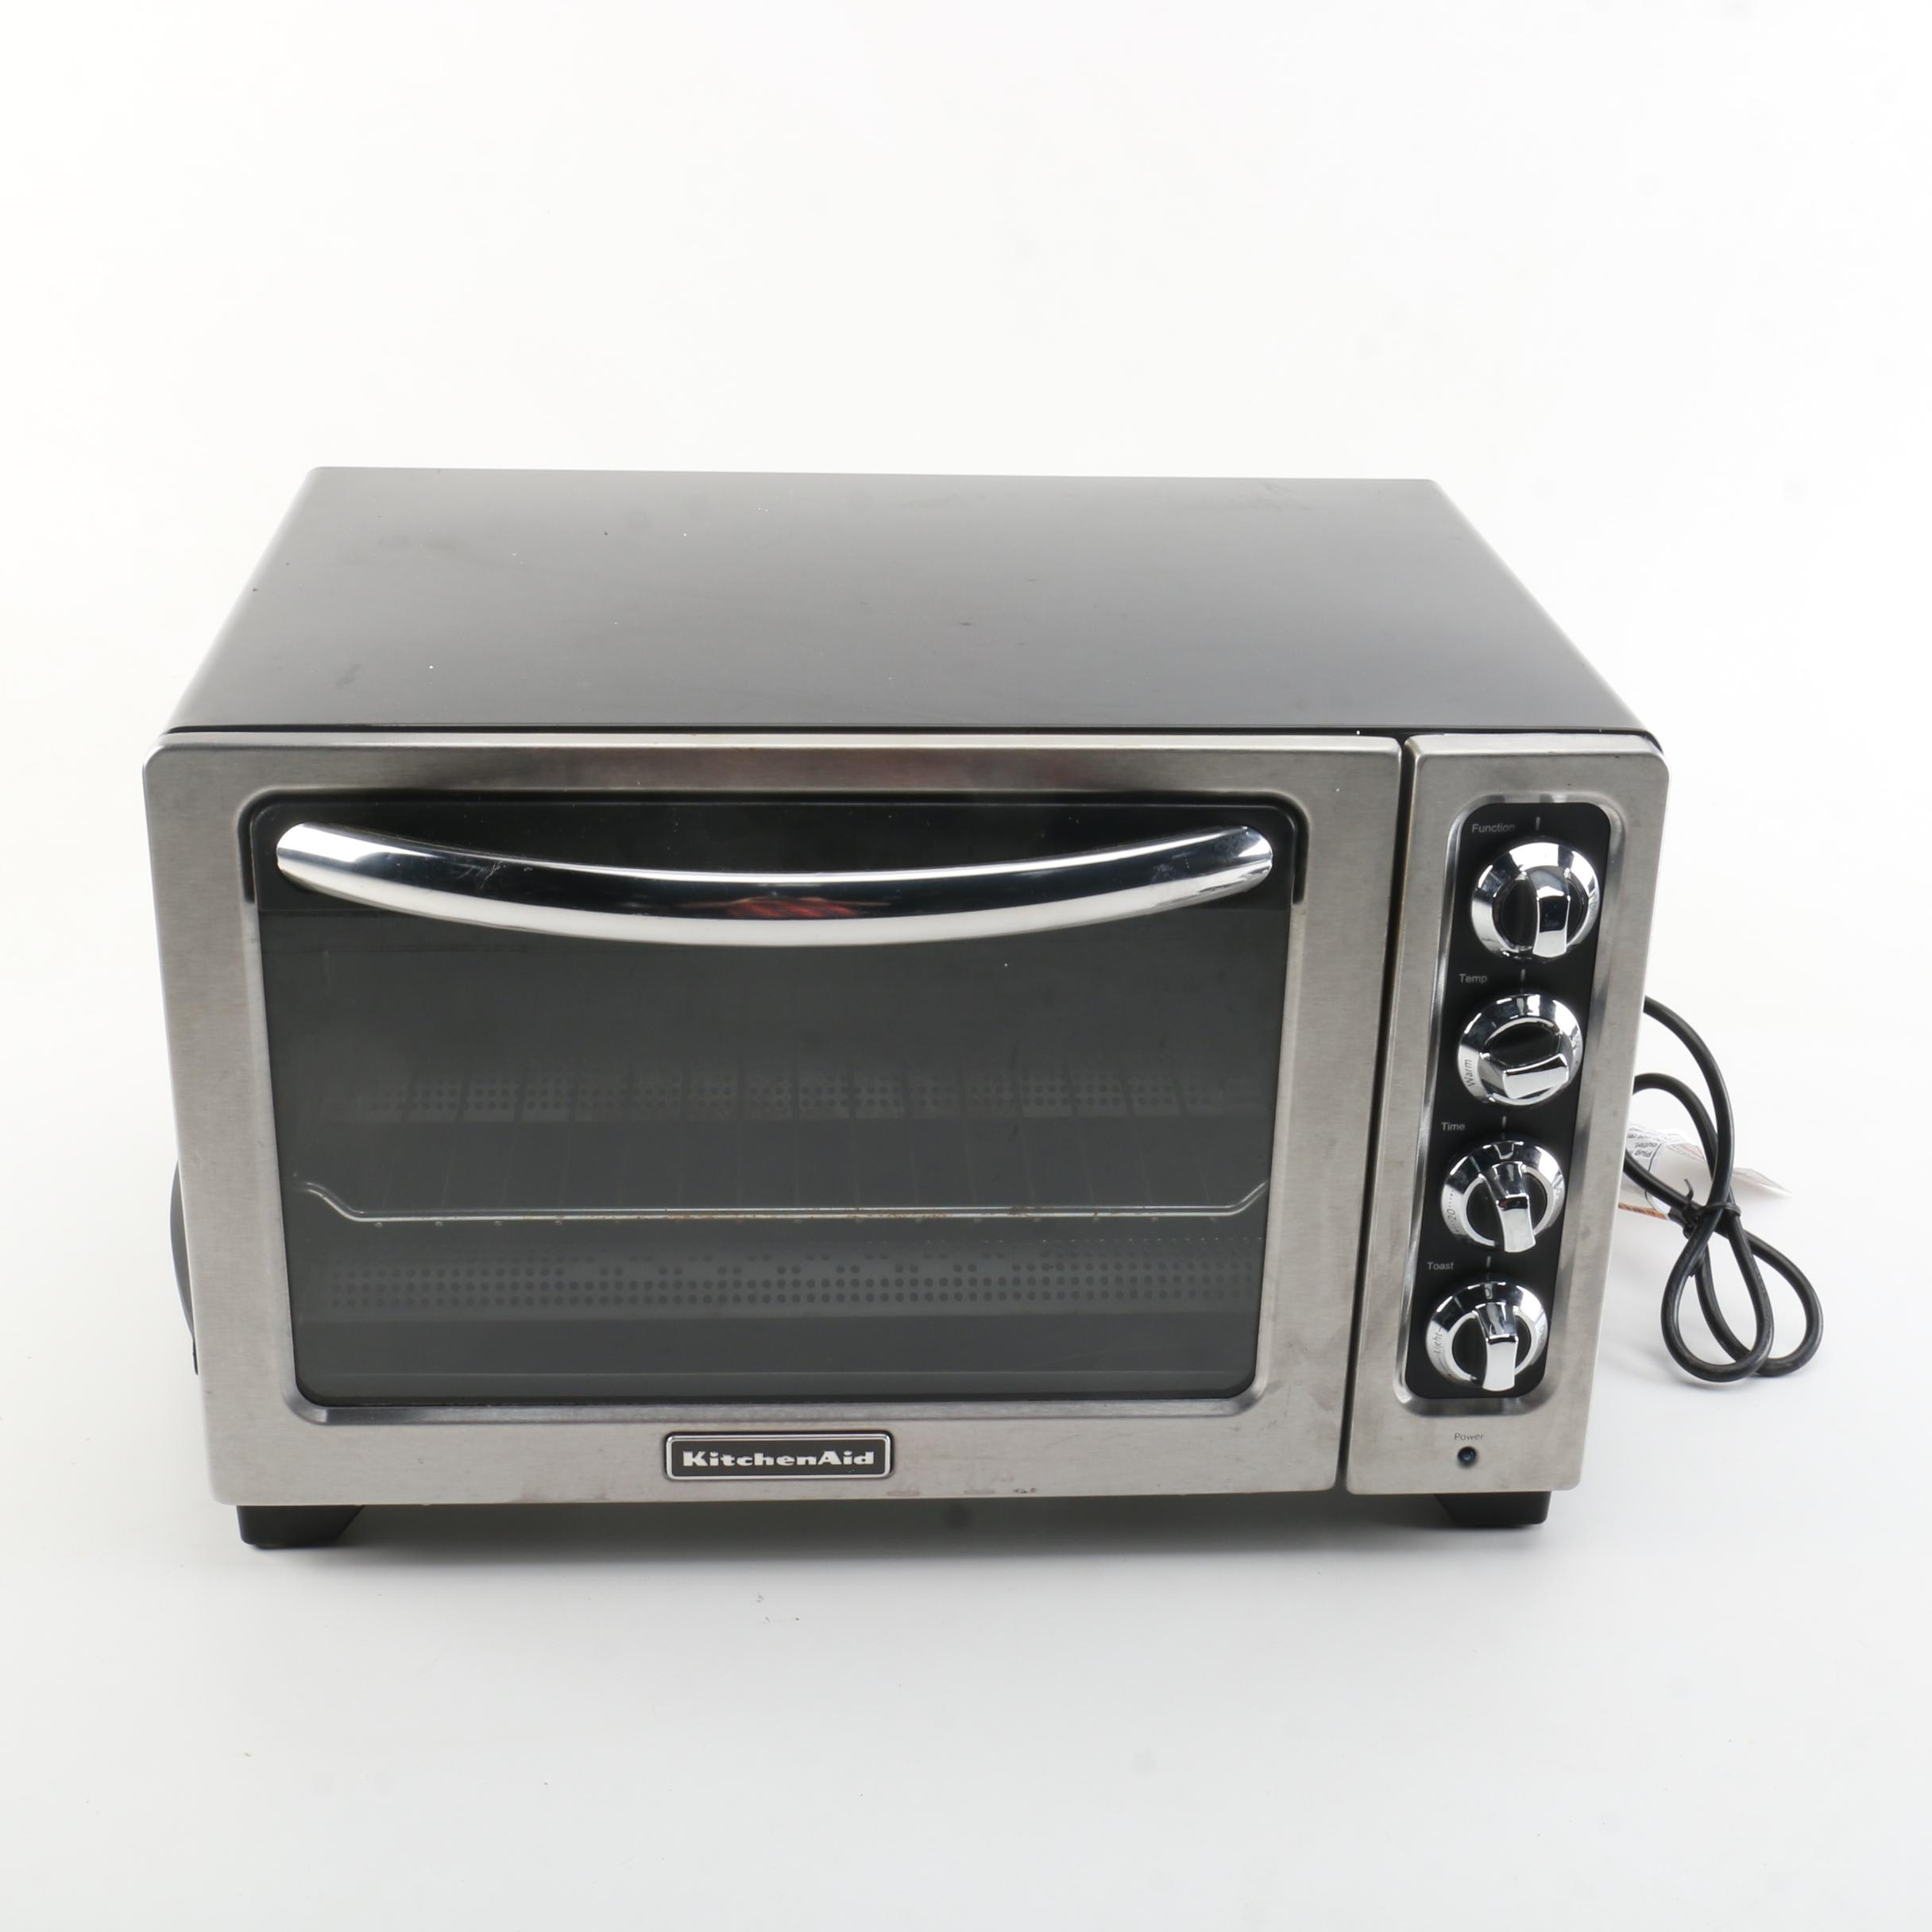 KitchenAid Electric Compact Oven